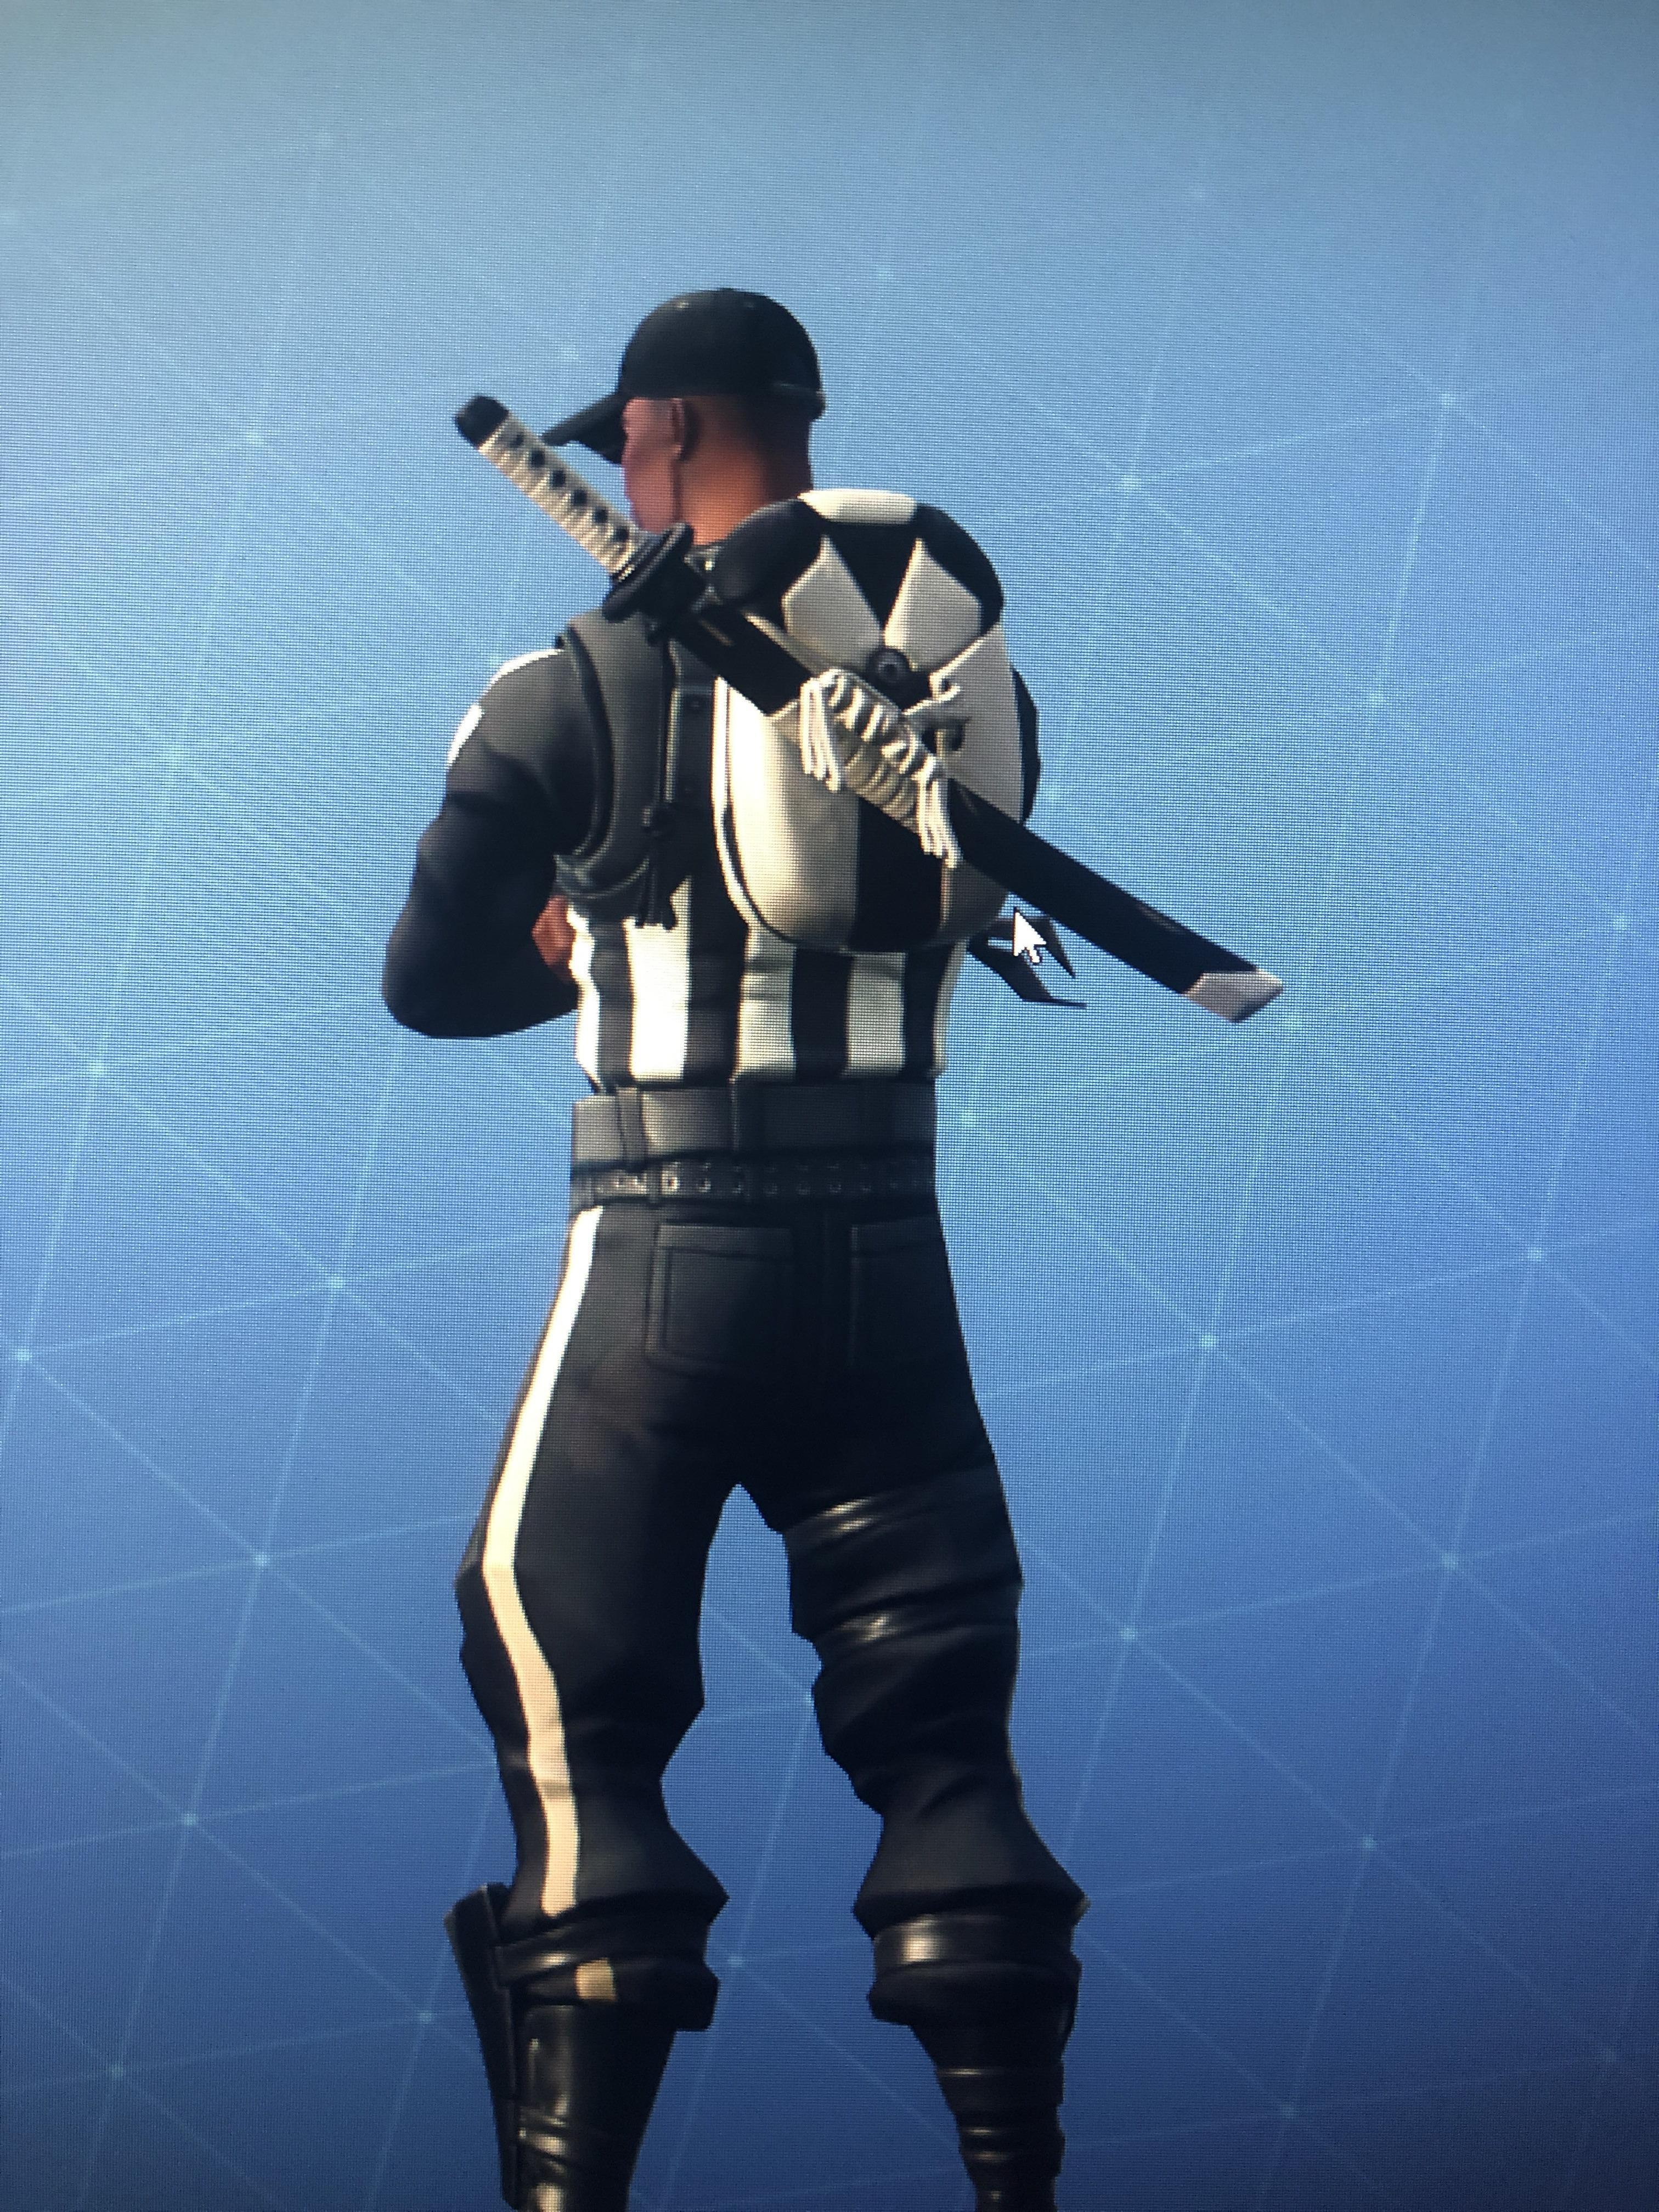 Striped Soldier Fortnite wallpapers